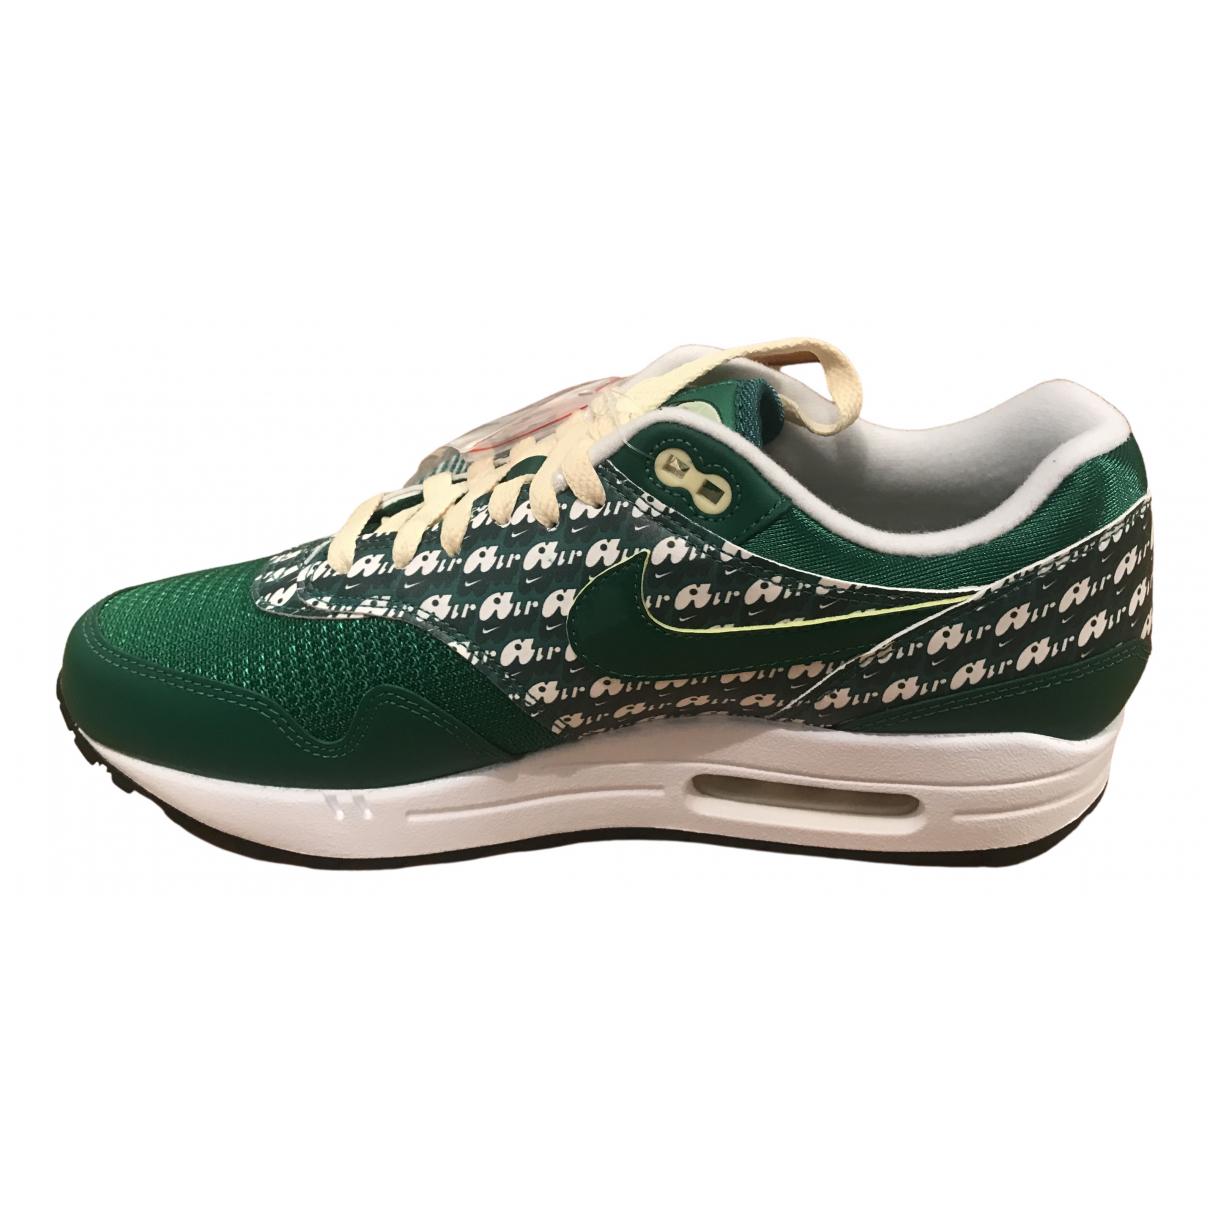 Nike Air Max 1 Green Leather Trainers for Men 42.5 EU